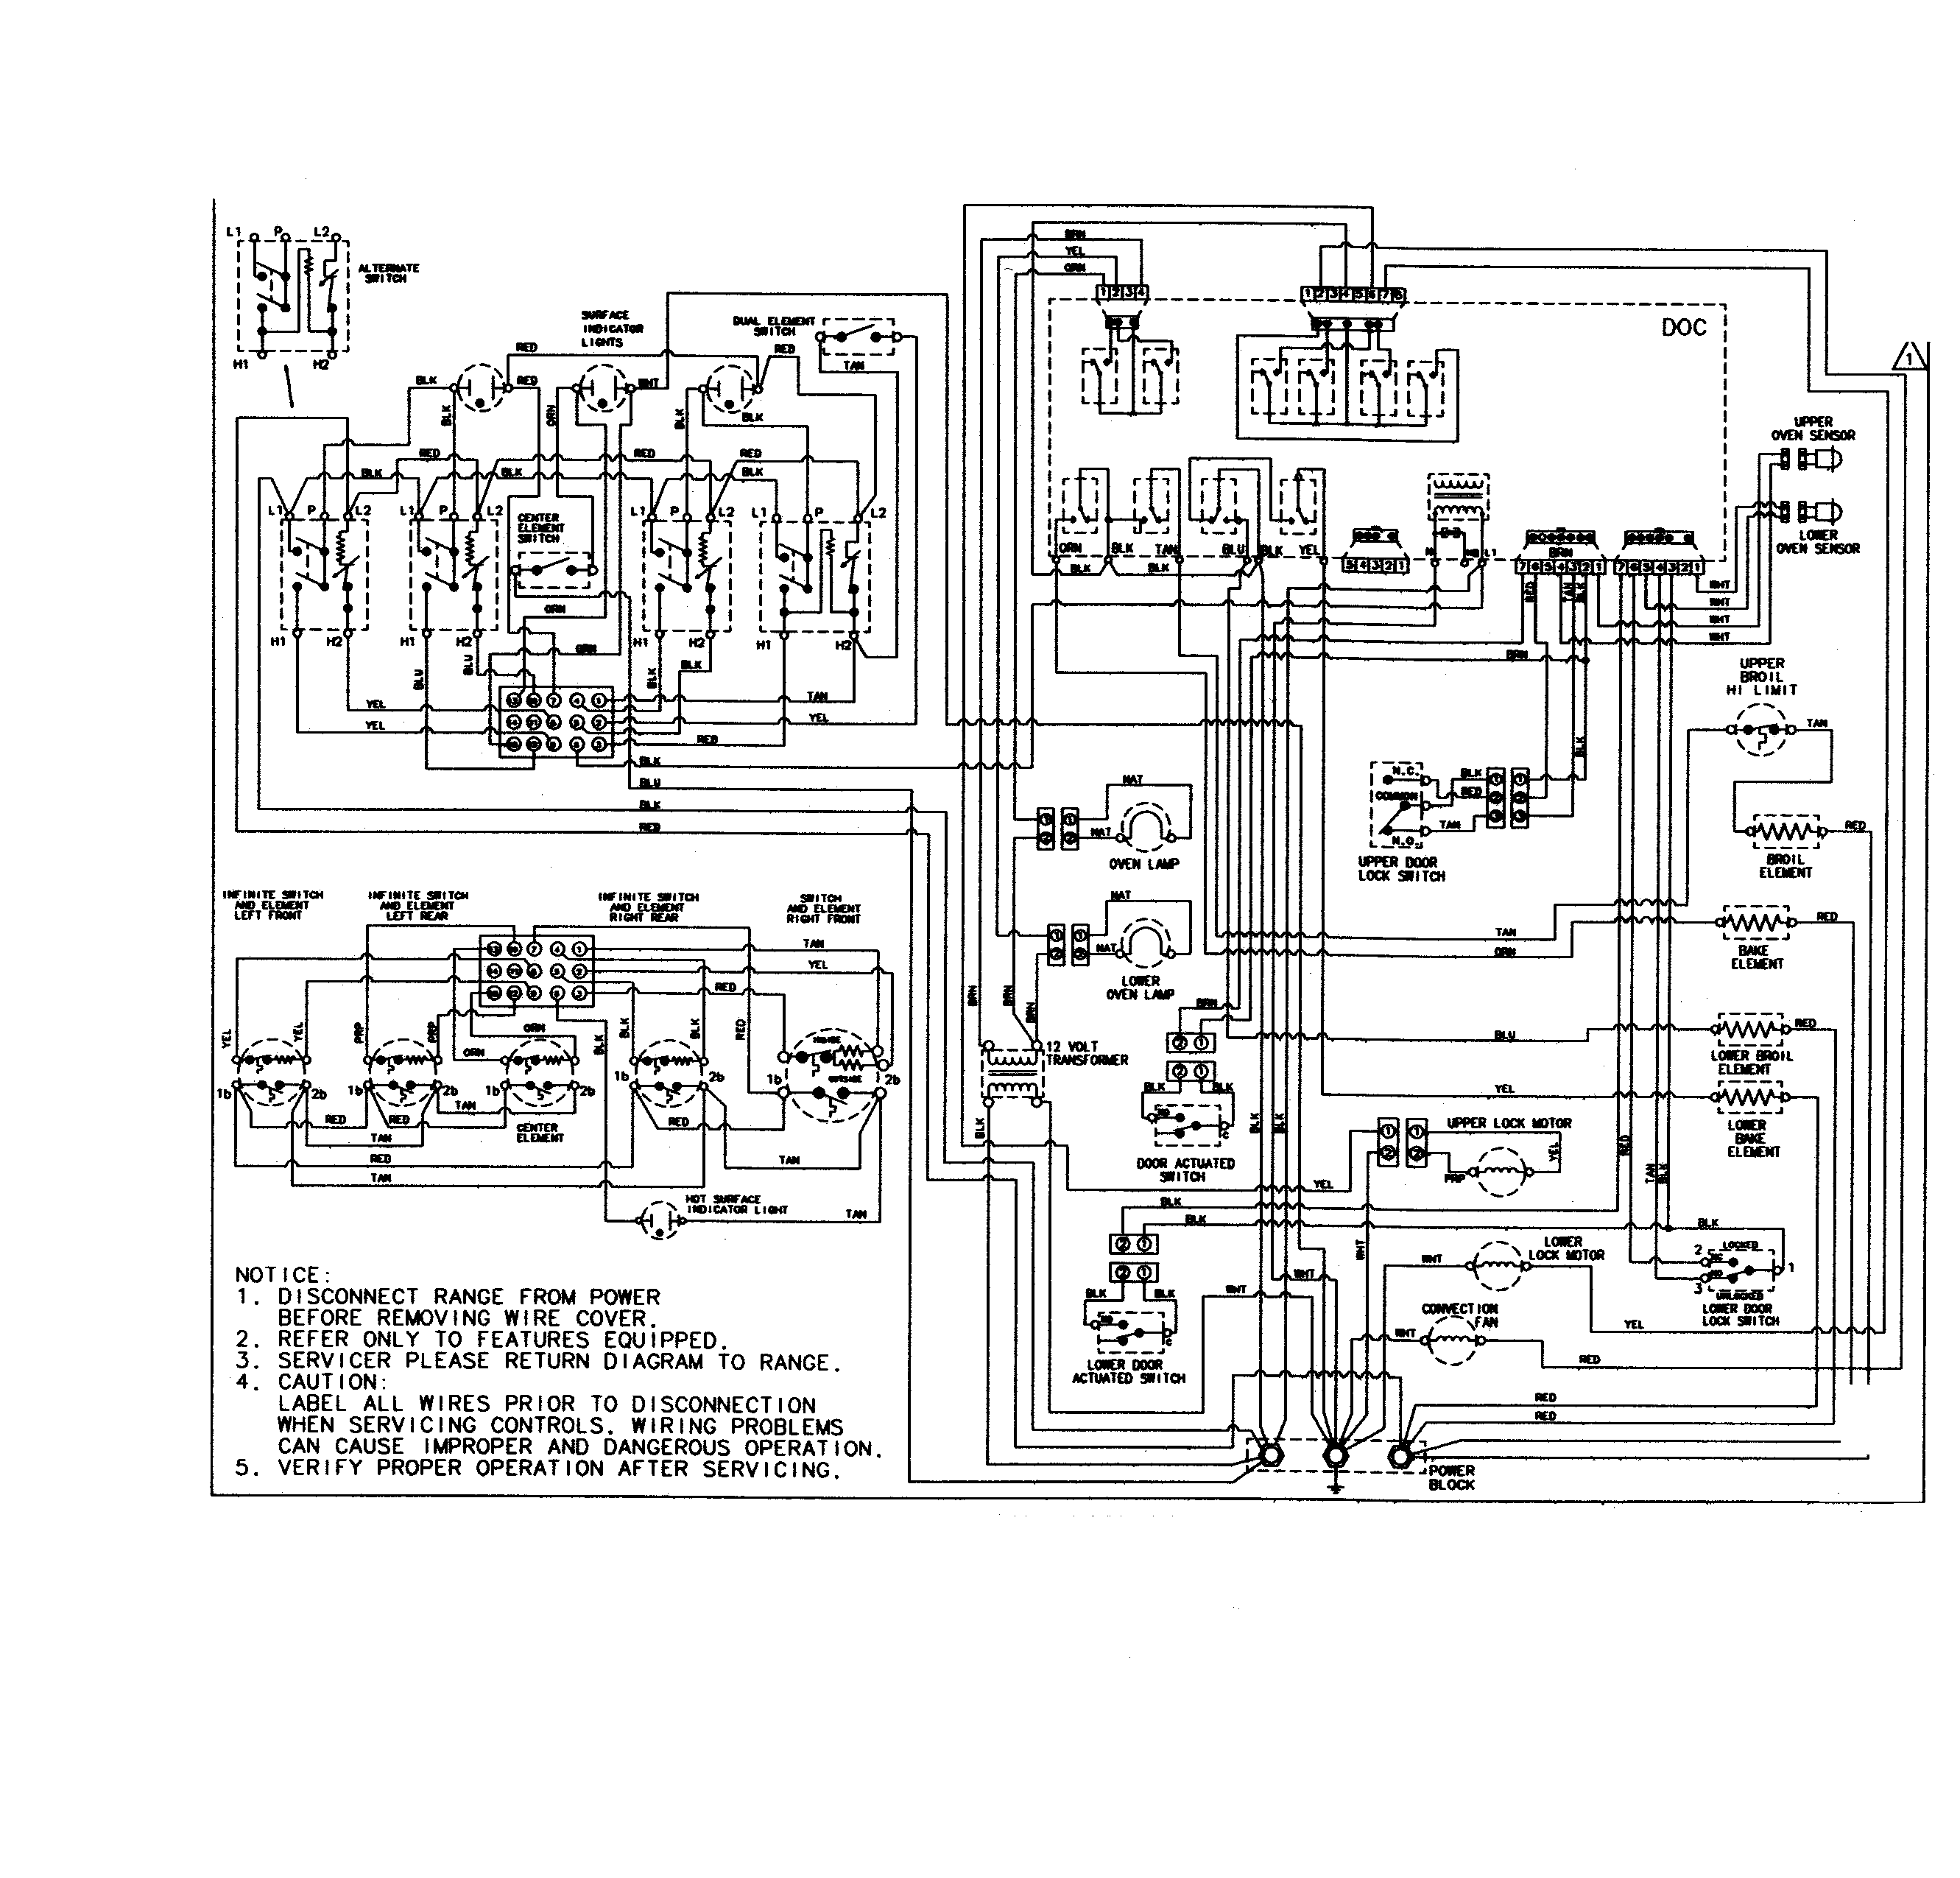 tag stove wiring diagram tag wiring diagrams tag stove element wiring diagram tag wiring diagrams